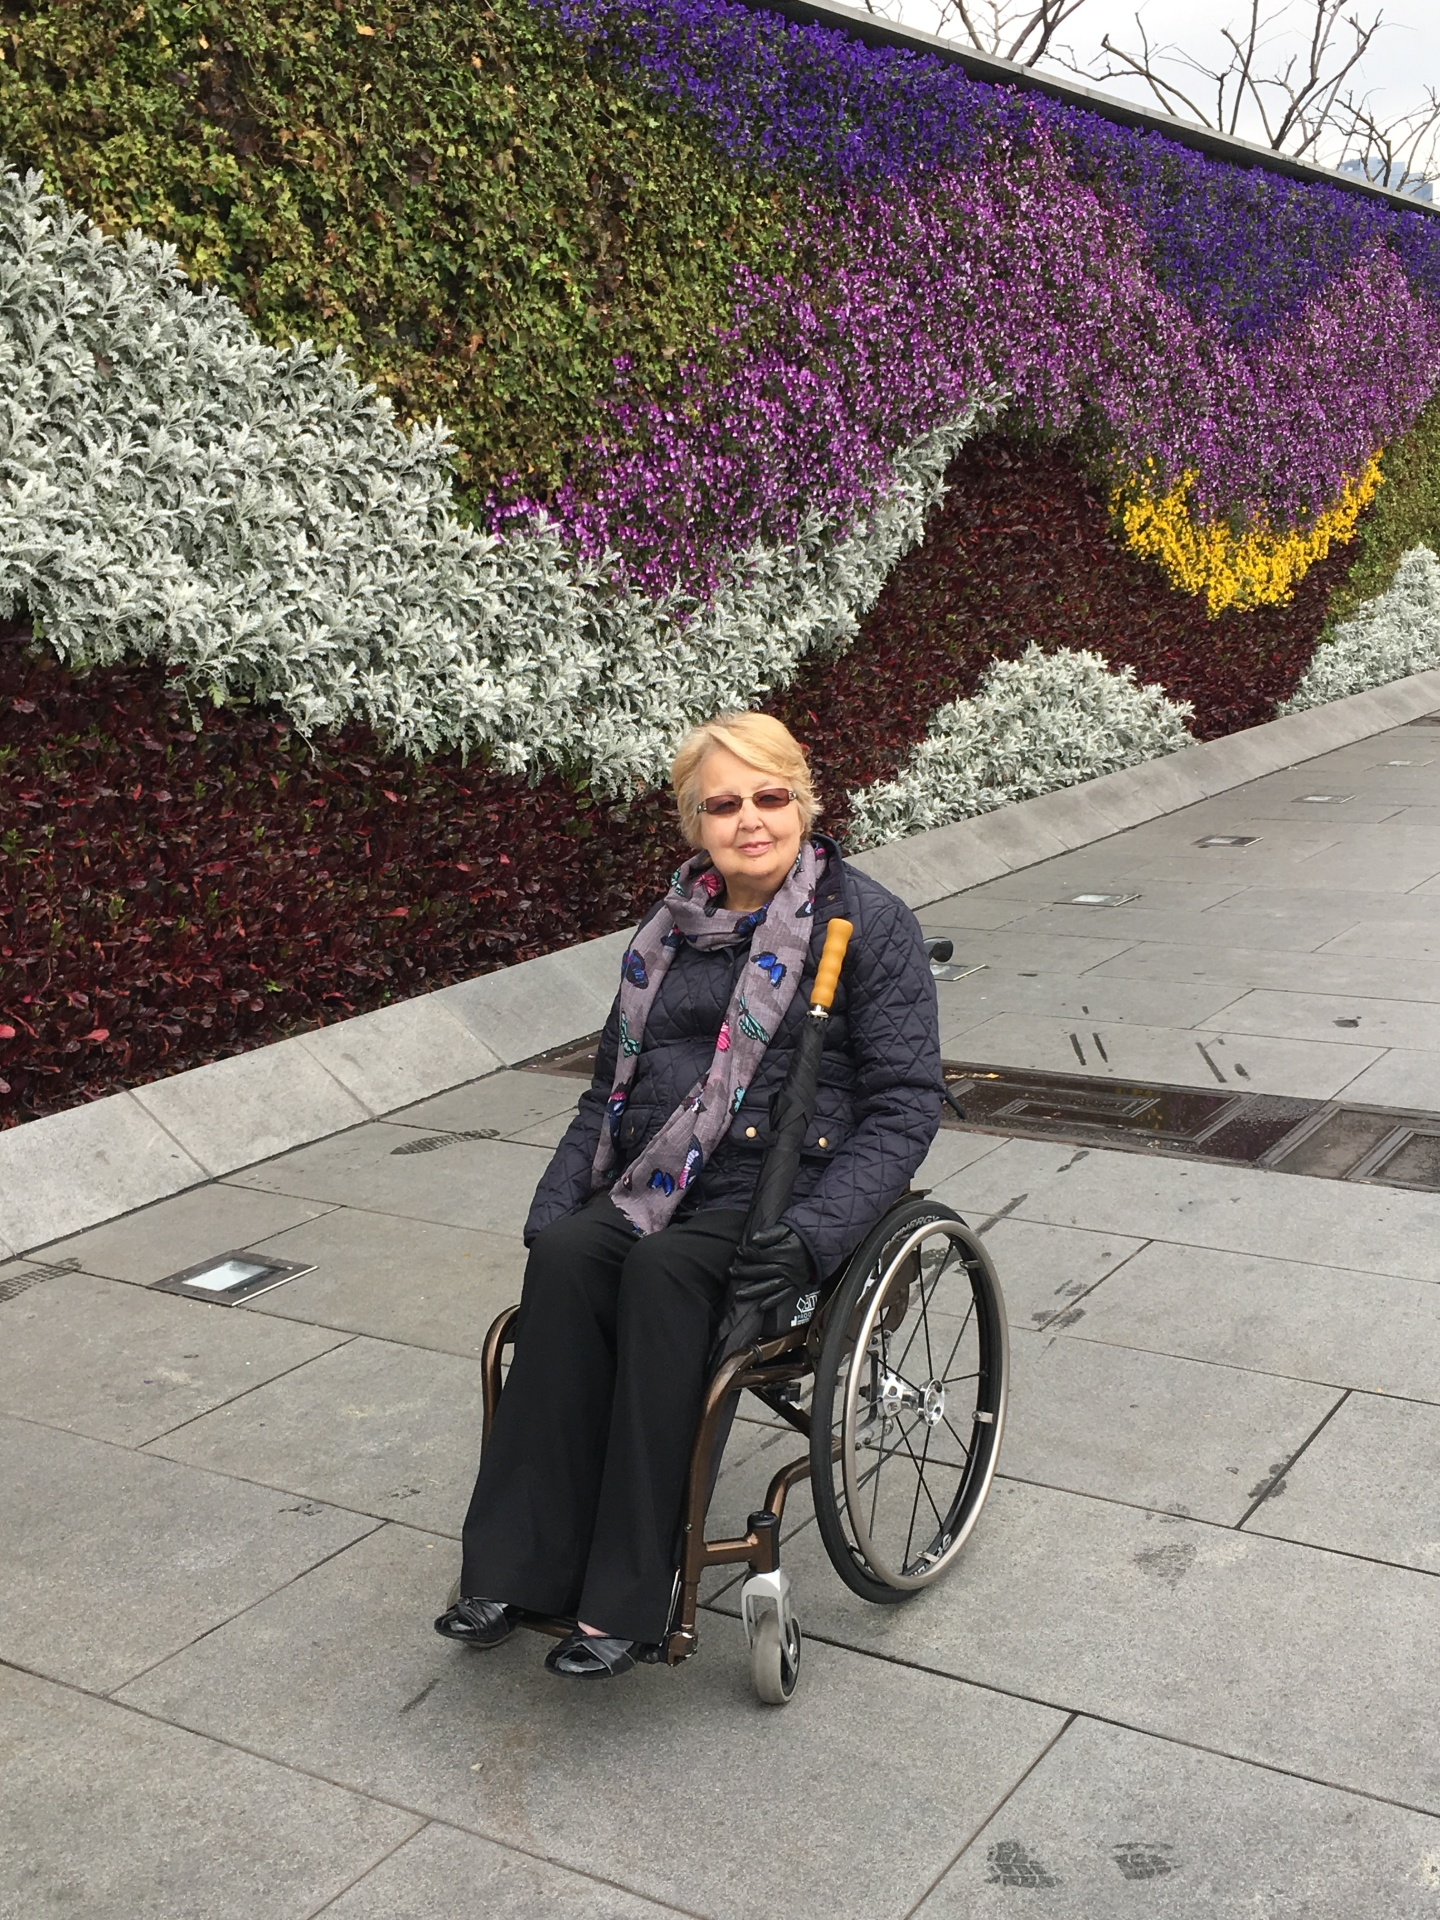 Life in a Wheelchair - The Facts